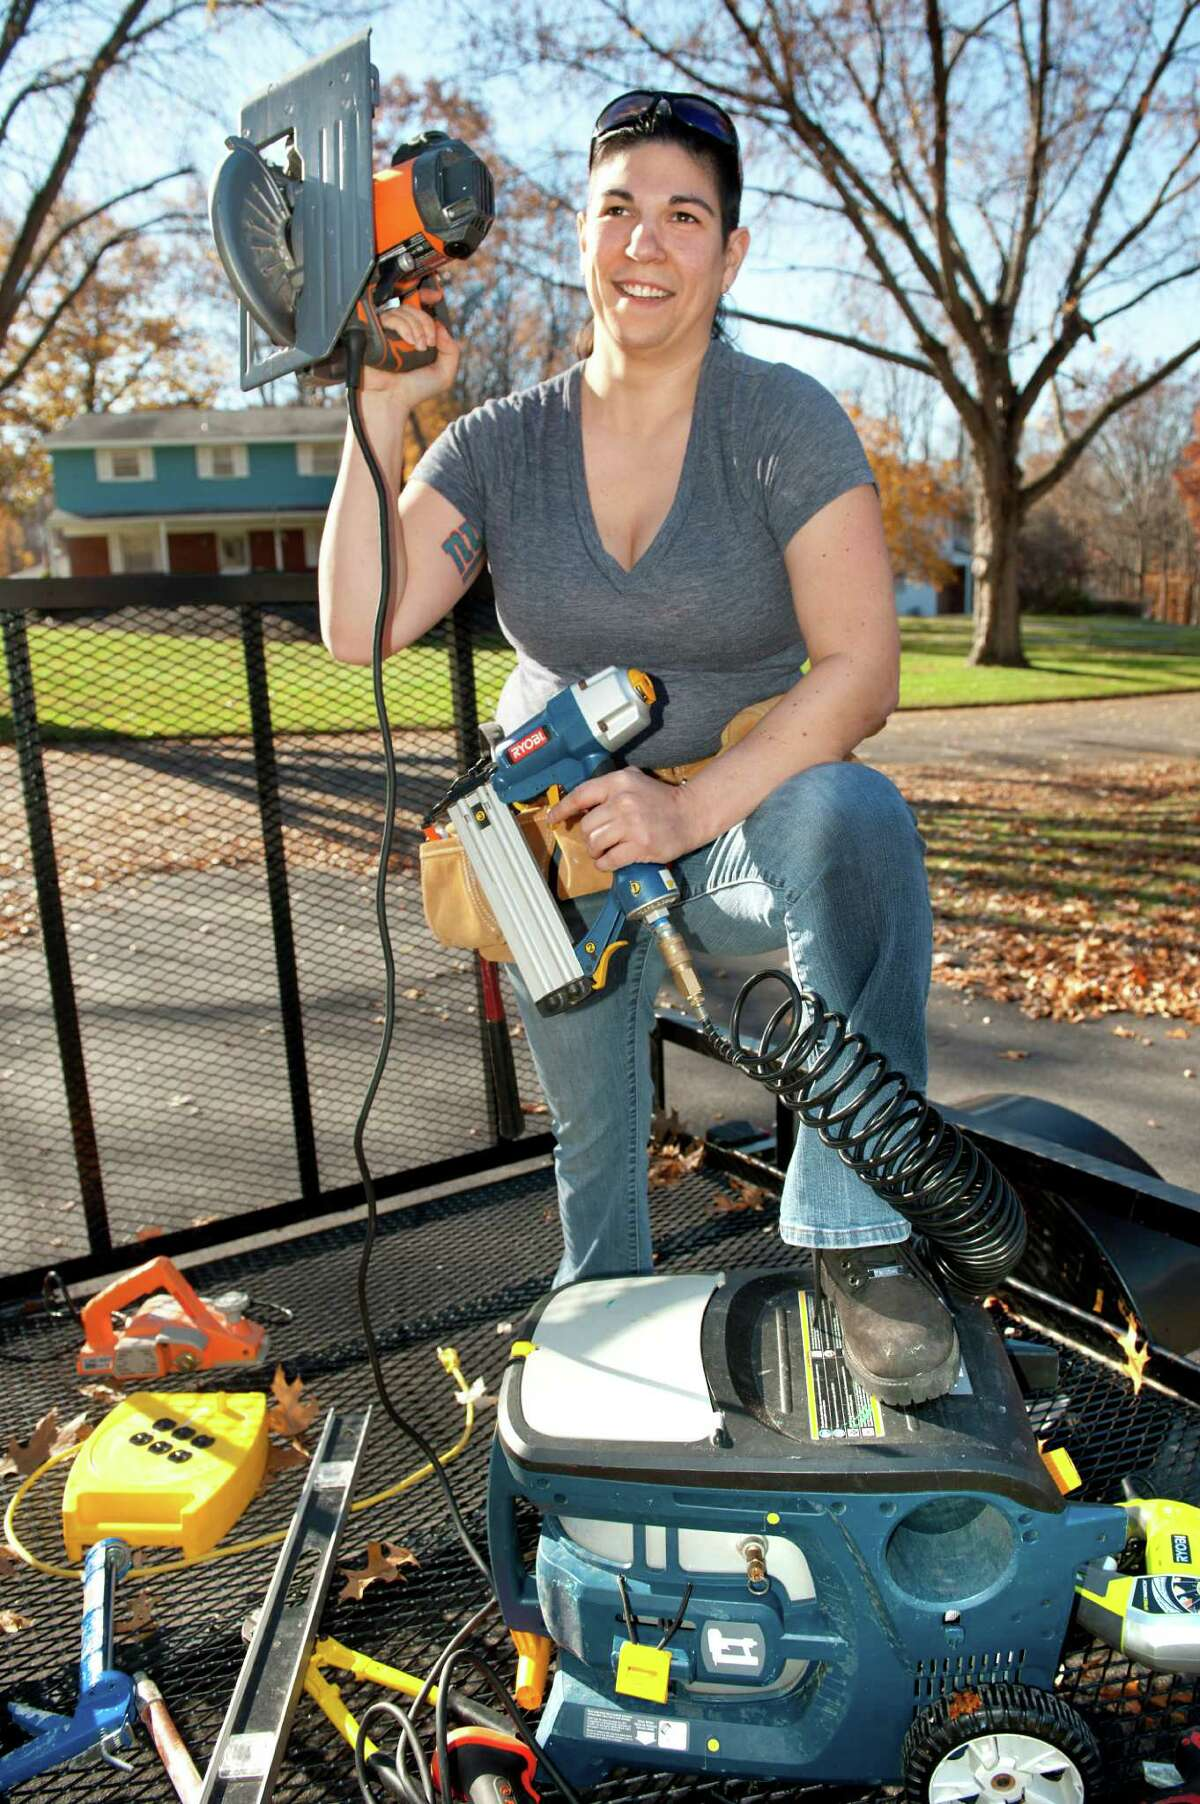 Deborah Garnett, who owns a general contracting business, on Wednesday, Nov. 4, 2015, at her home in Clifton Park, N.Y. (Cindy Schultz / Times Union)